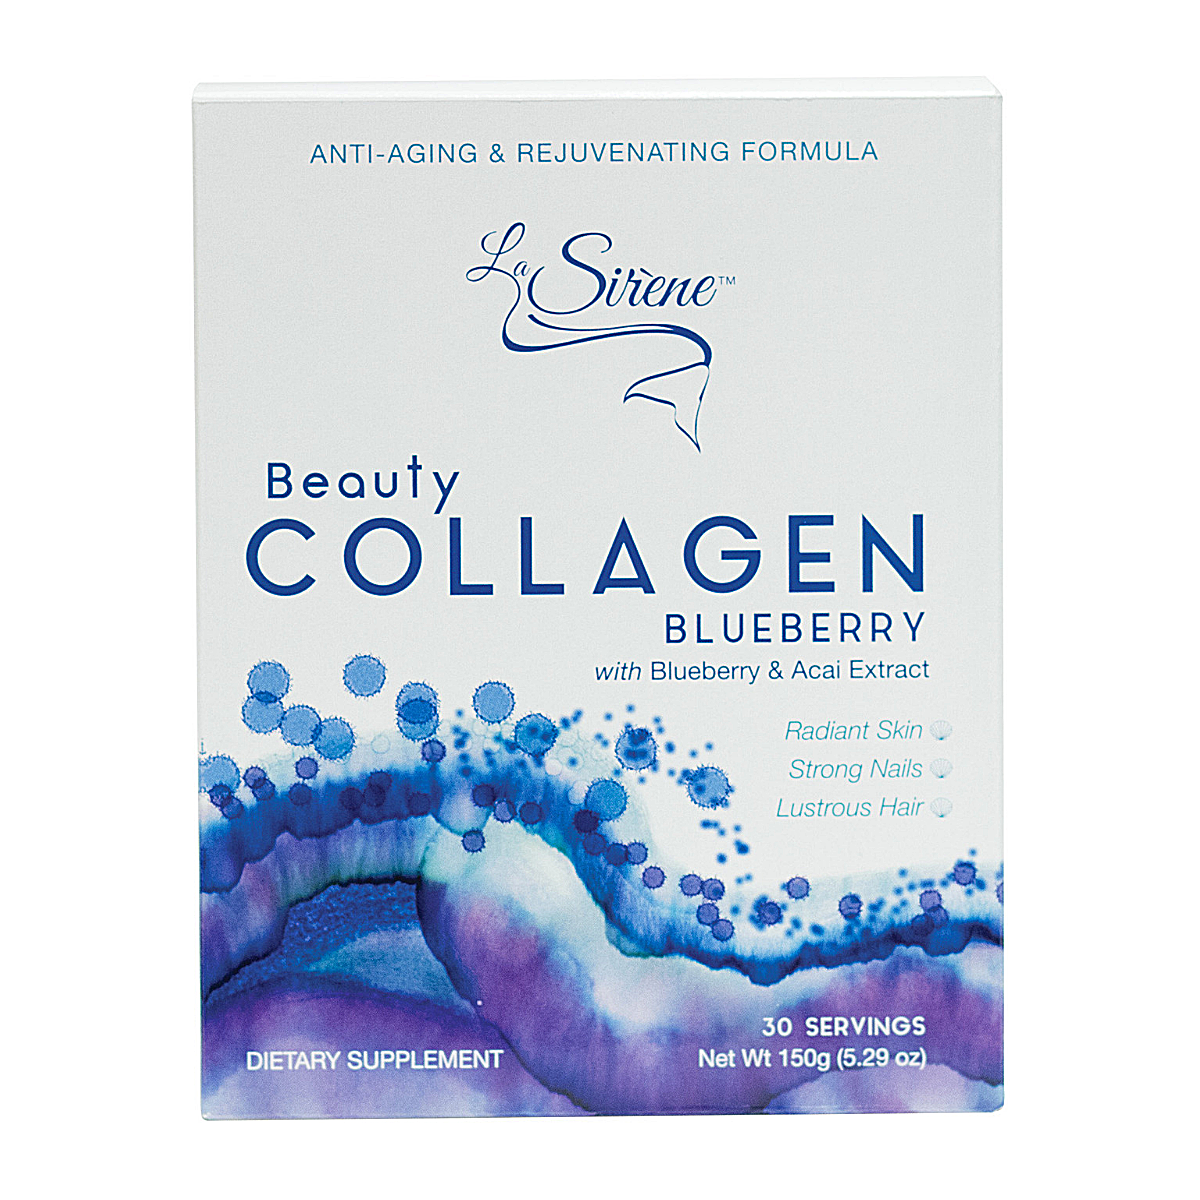 Blueberry Beauty Collagen - La Sirene Beauty Marine Collagen,